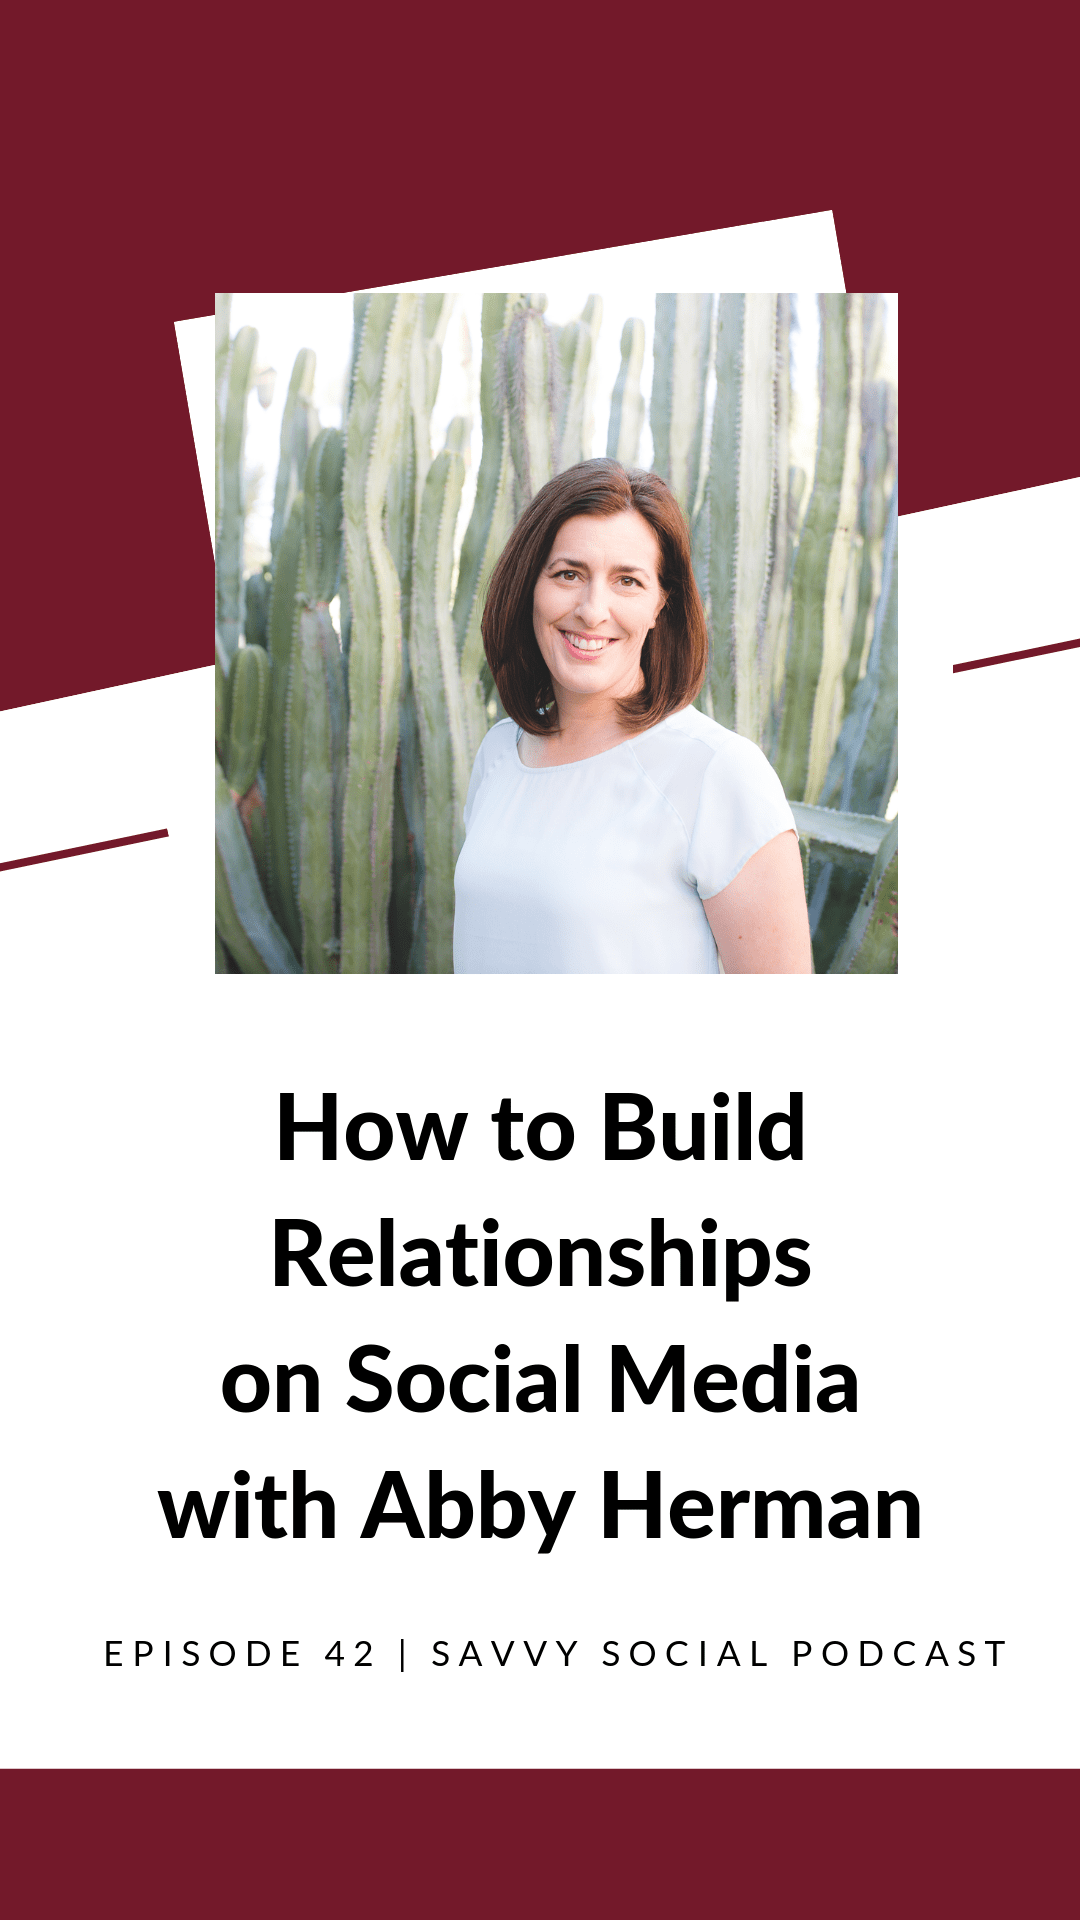 How to Build Relationships on Social Media with Abby Herman